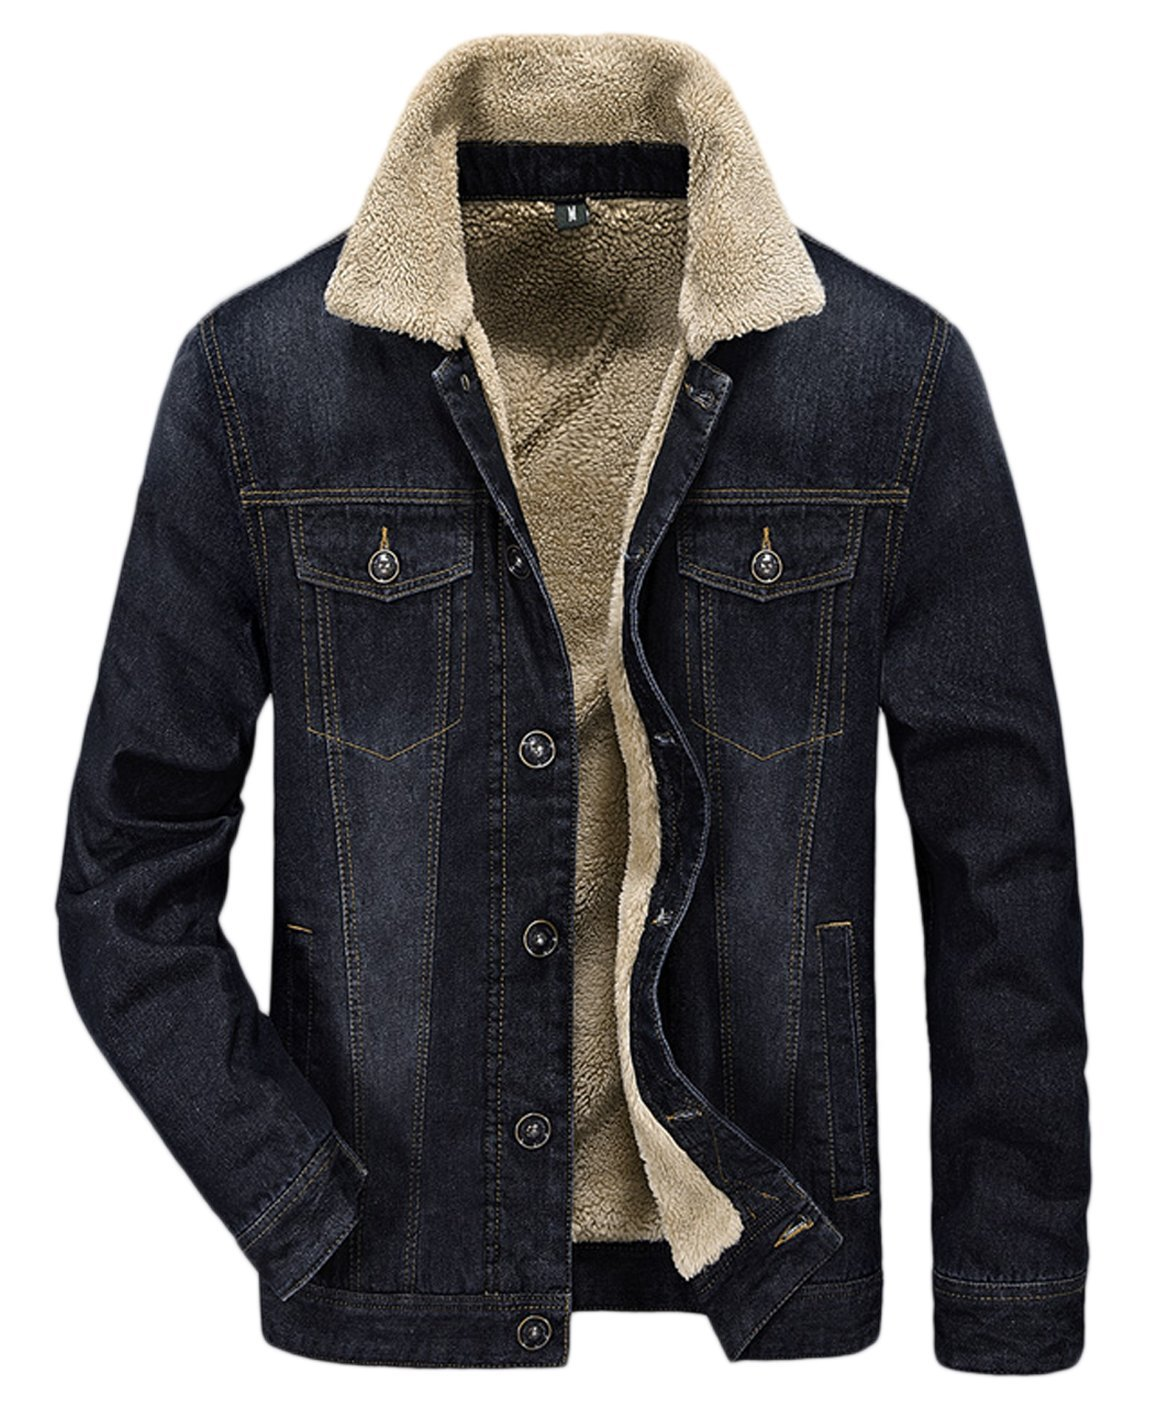 HOWON Men's Plus Cotton Warm Fur Collar Sherpa Lined Denim Jacket Button Down Classy Casual Quilted Jeans Coats Outwear Black XL by HOWON